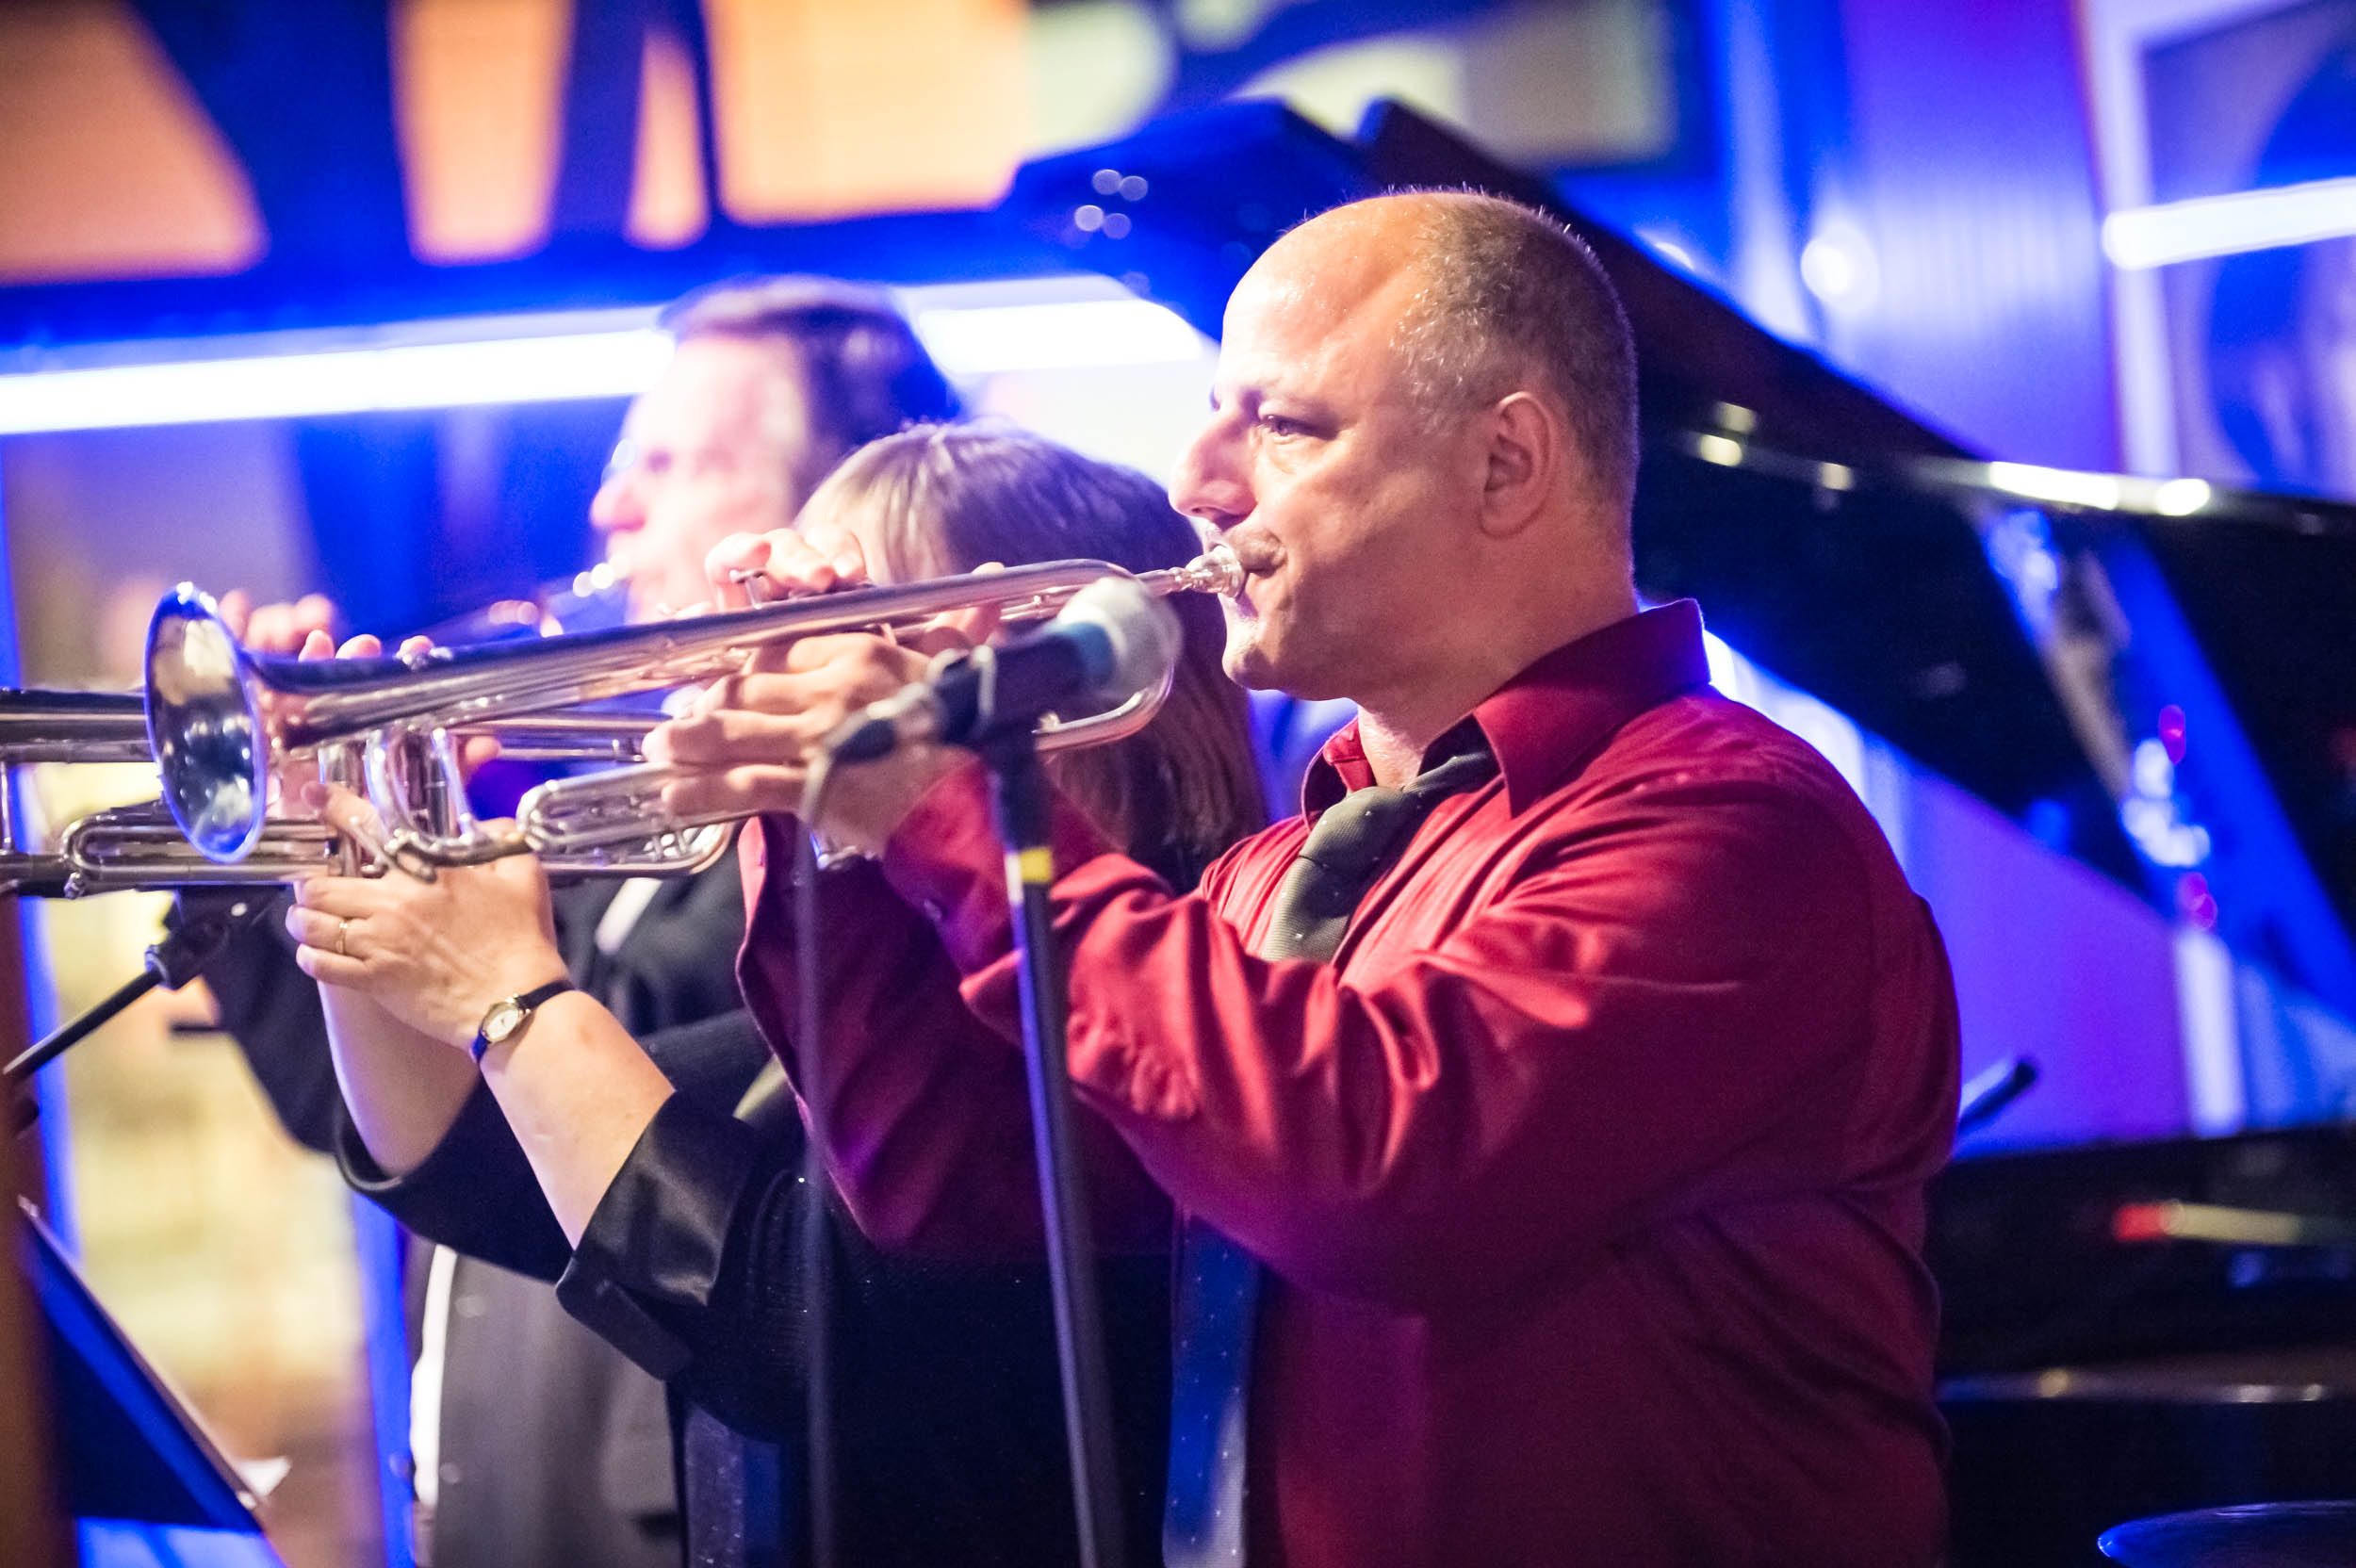 Maura Wayman Photography, Photography, Corporate Photography, stock, stock images, Massachusetts, Boston, Metro West, man, band, Ryles, Music, evening, outside, singer, performer, nightclub, trumpet, musician